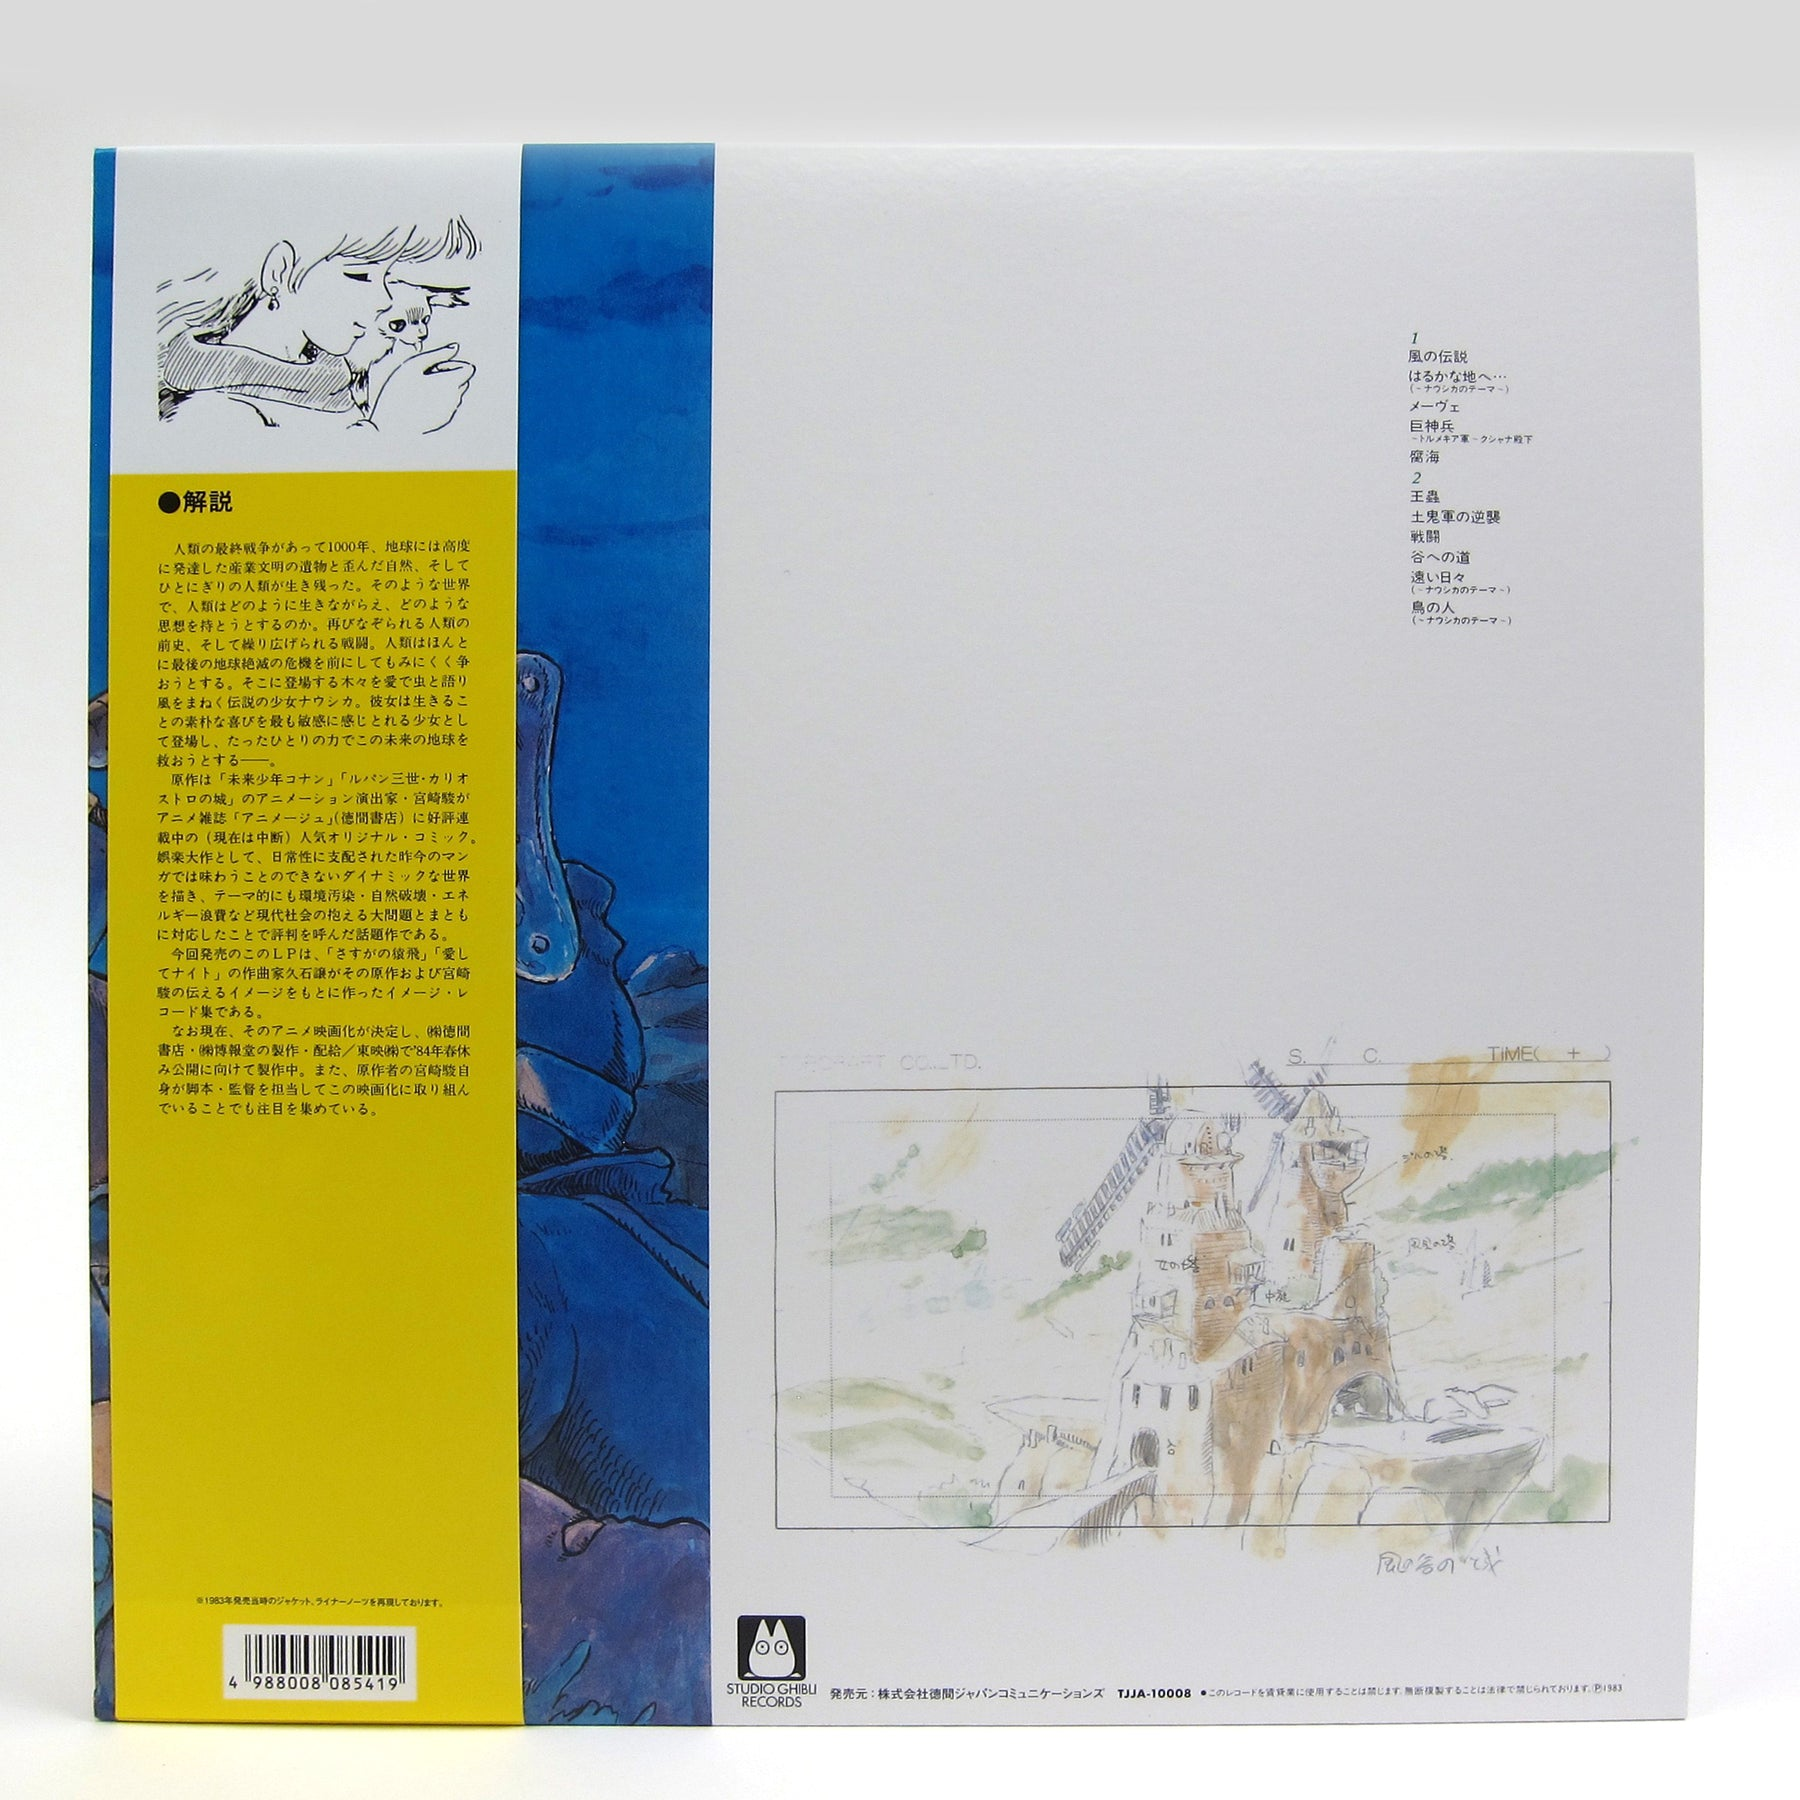 Nausicaa Of The Valley Of The Wind Map.Joe Hisaishi Nausicaa Of The Valley Of Wind Image Album Vinyl Lp